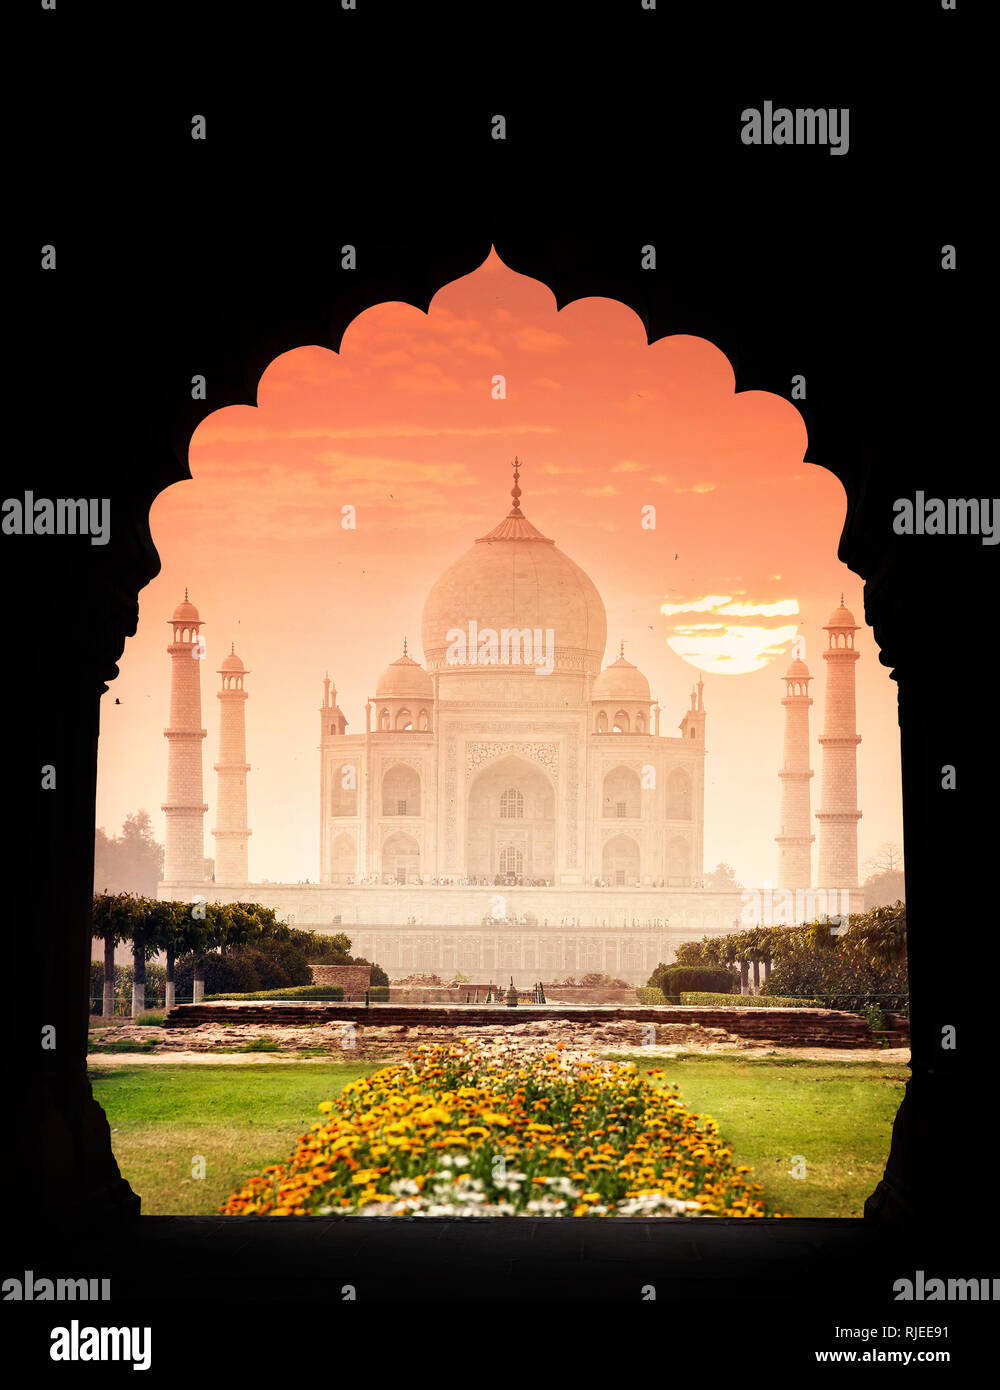 Taj Mahal Monument View From Arch Silhouette And Beautiful